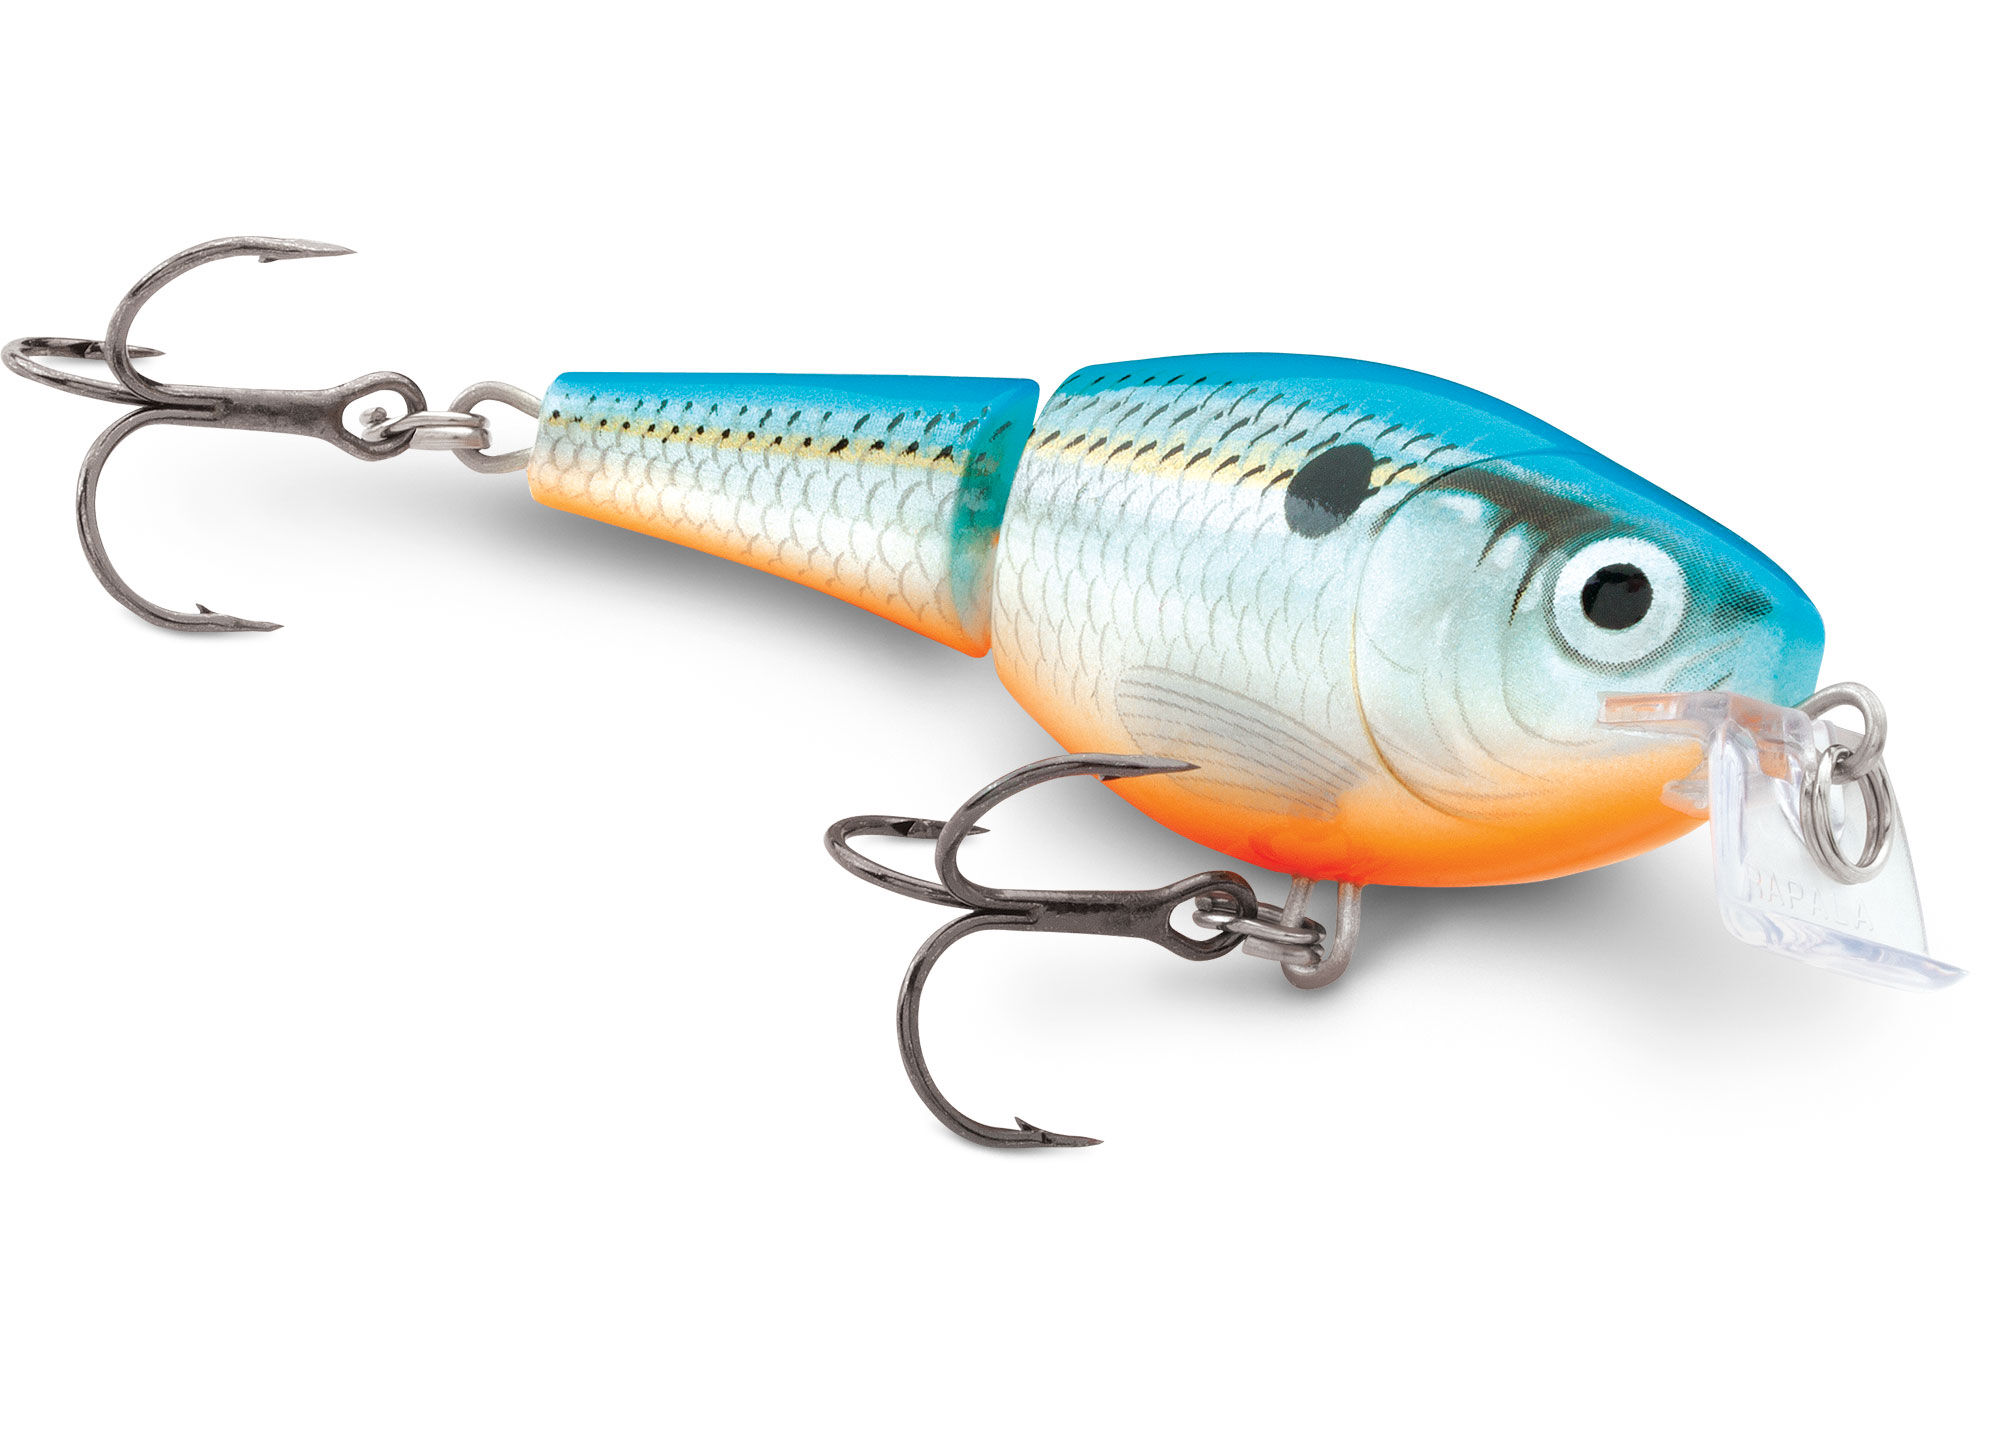 JSSR05 Rapala Jointed Shallow Shad Rap Lure 5cm//7g Lots of different colours